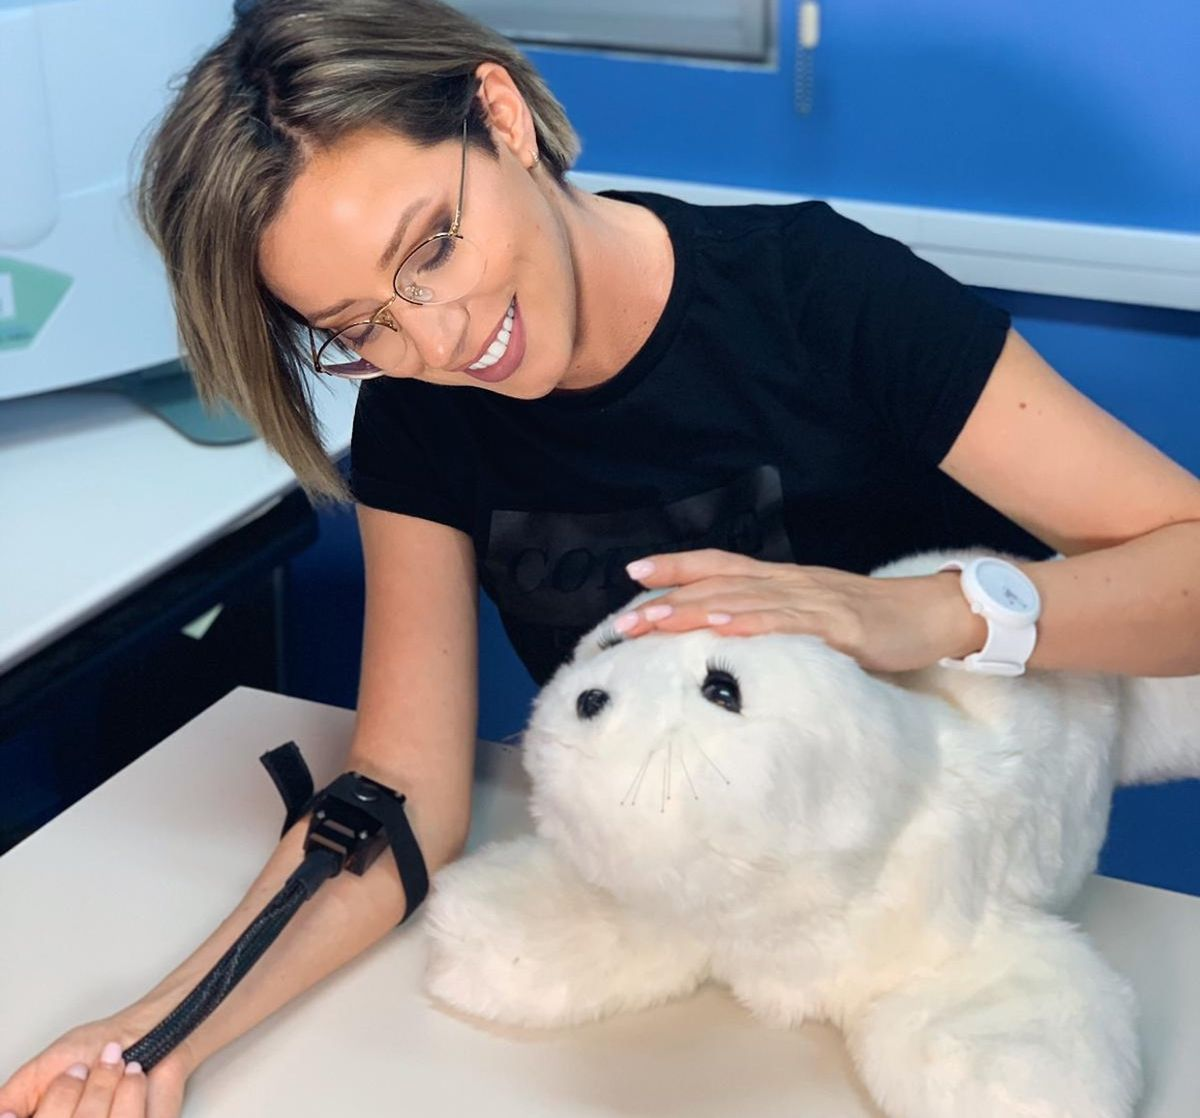 Study shows that interacting with a robotic seal can reduce the perception of pain